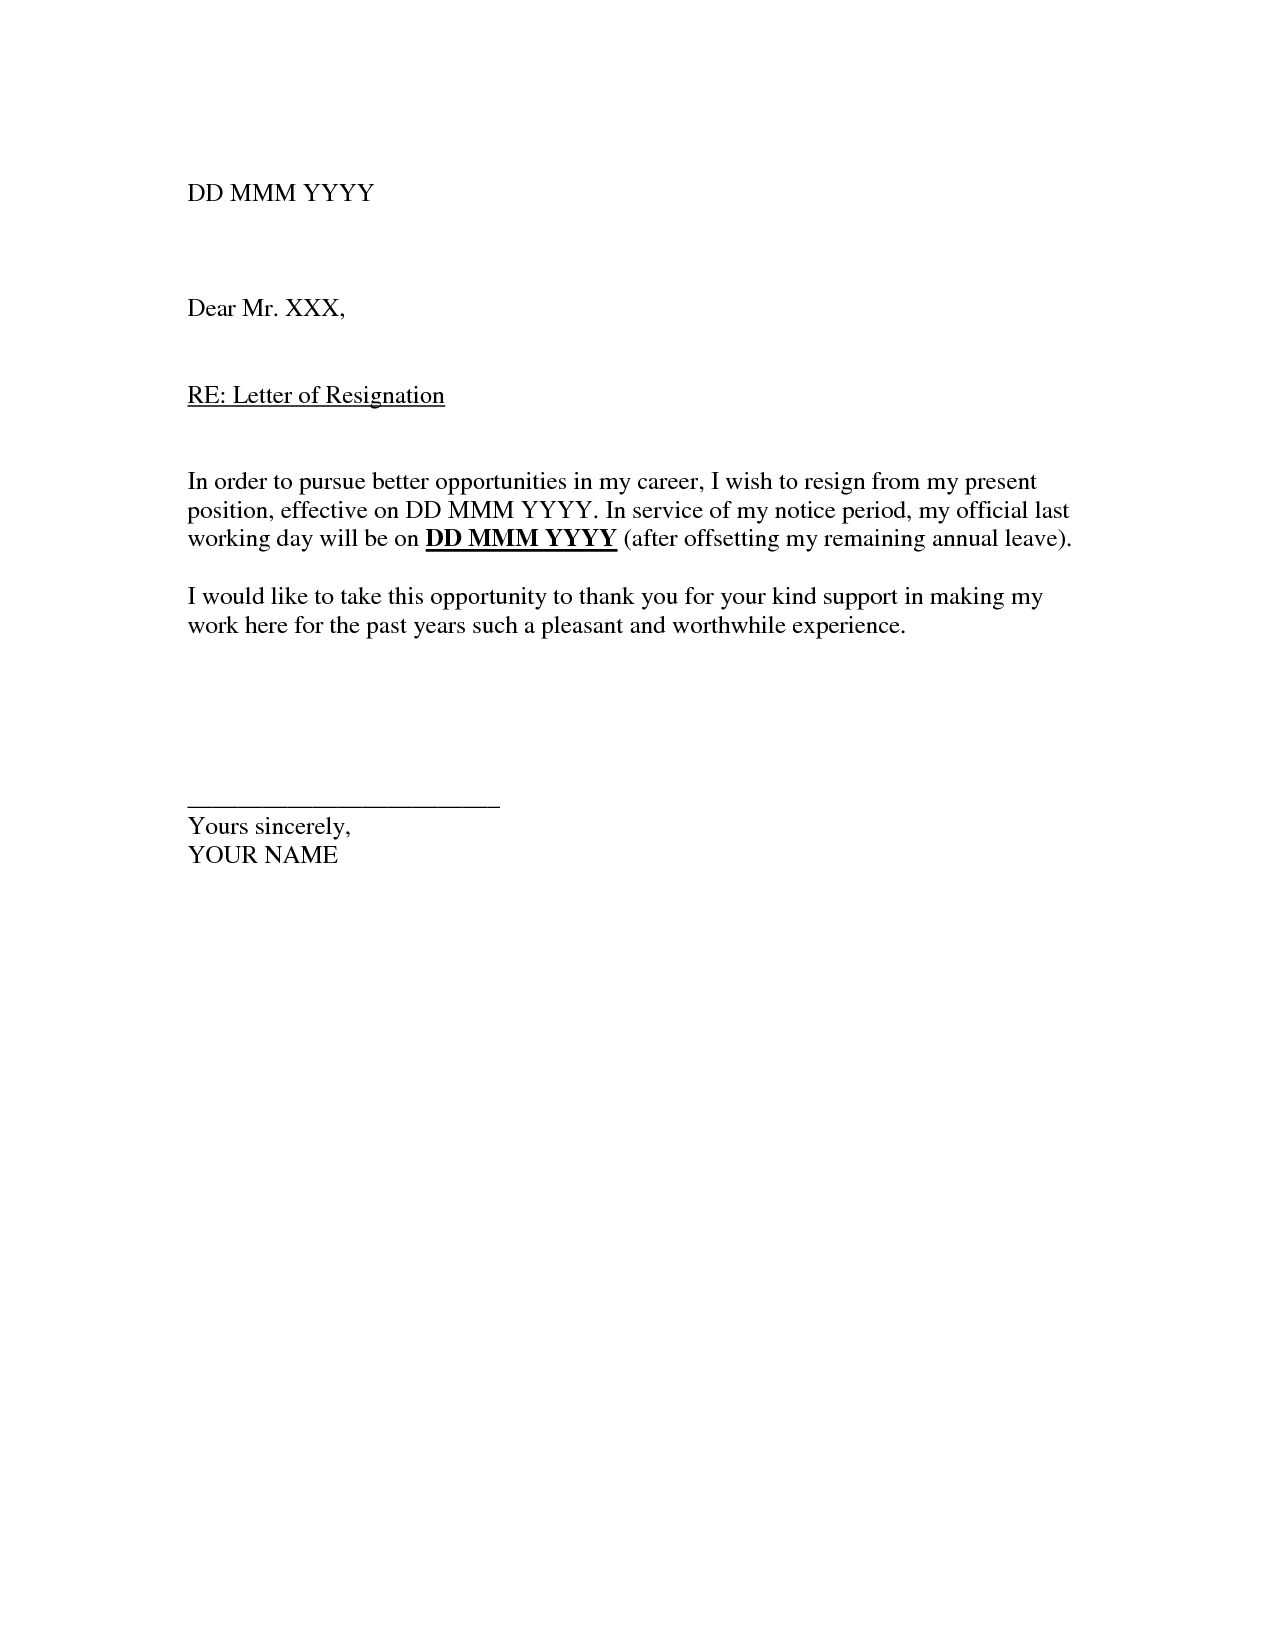 Short notice resignation letter sample resignation letter template short notice resignation letter sample resignation letter template expocarfo Choice Image